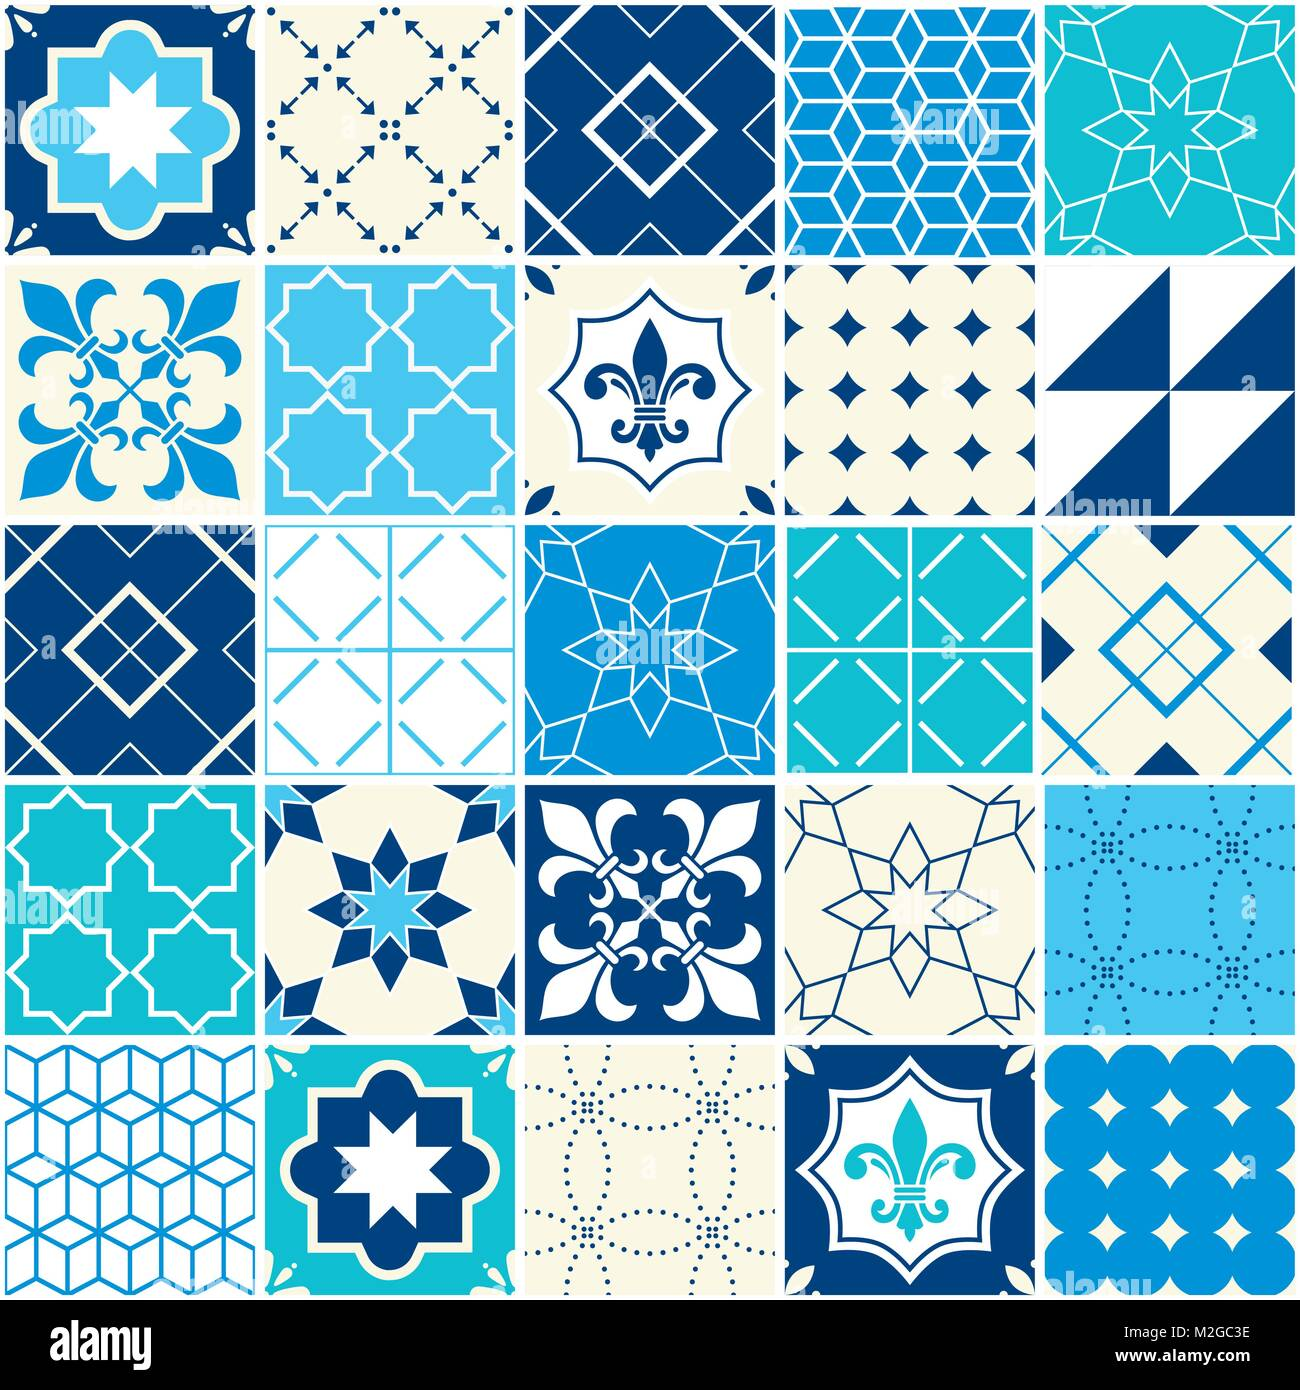 Seamless blue vector tile pattern, Azulejos tiles, Portuguese geometric and floral design - colorful - Stock Vector